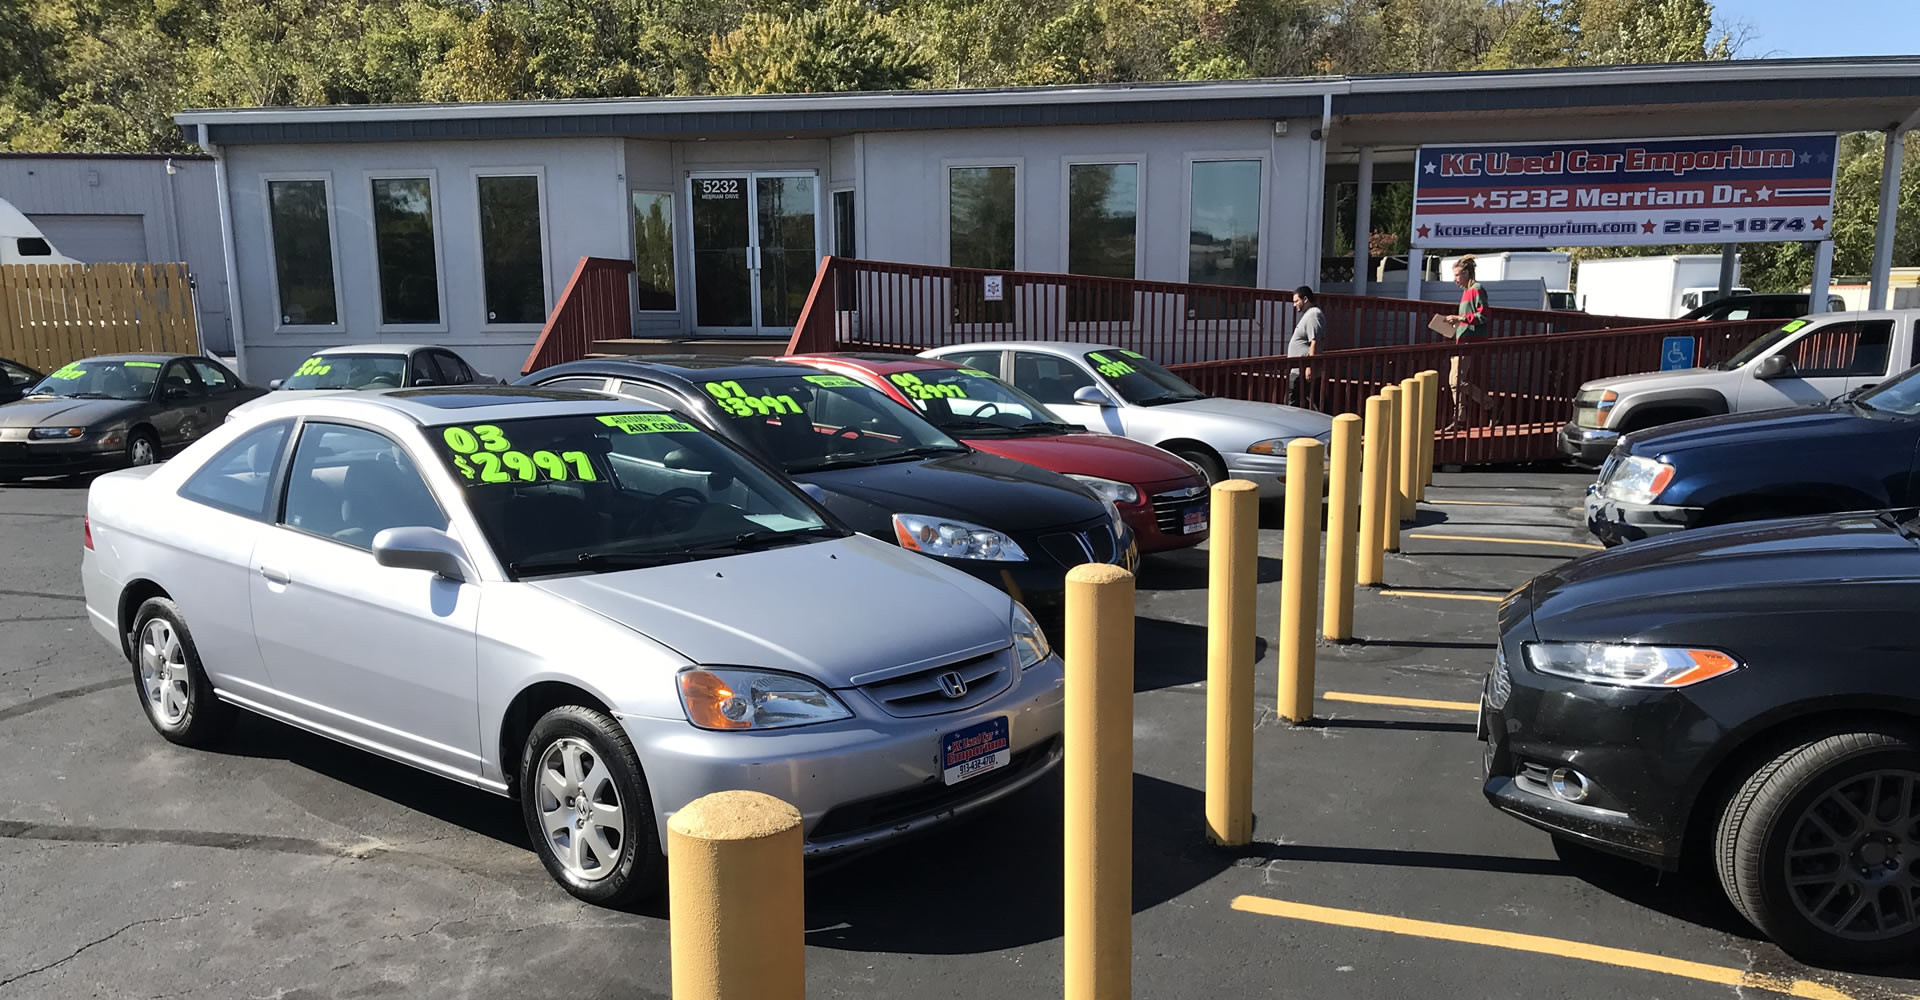 memphis used car lots inspirational used auto sales near me of 21 lovely memphis used car